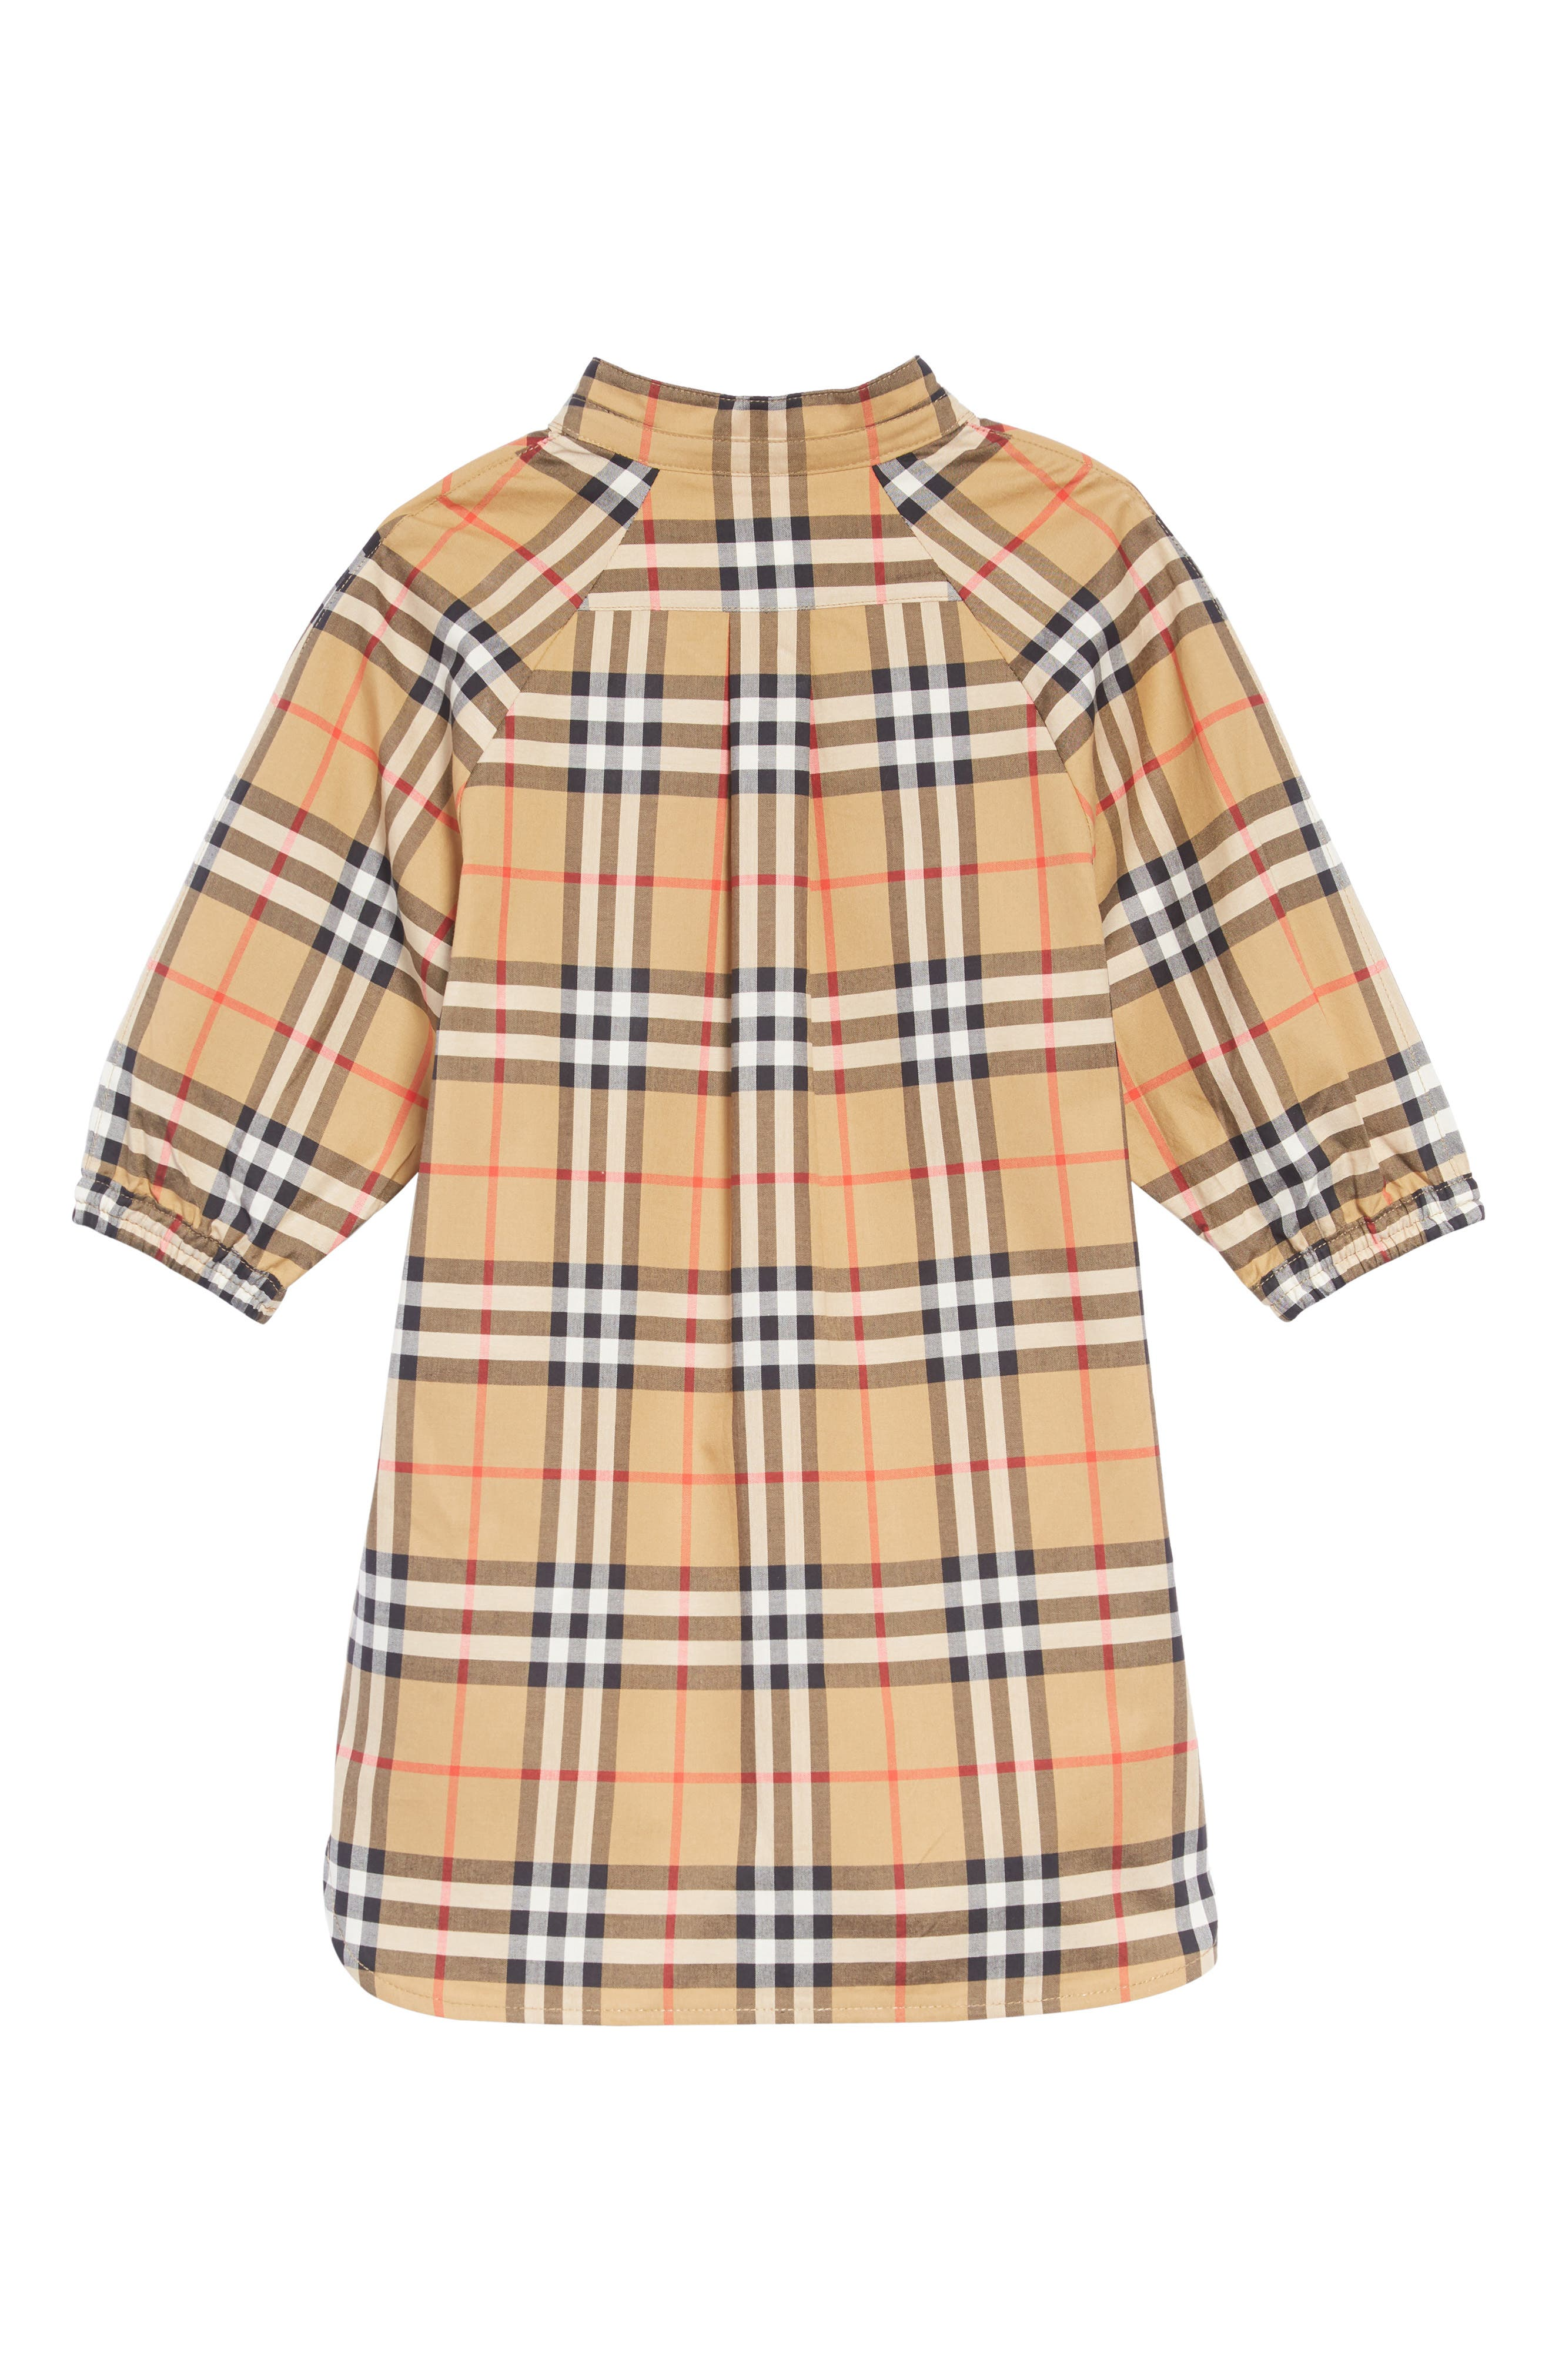 BURBERRY, Elodie Vintage Check Shirtdress, Alternate thumbnail 2, color, ANTIQUE YELLOW